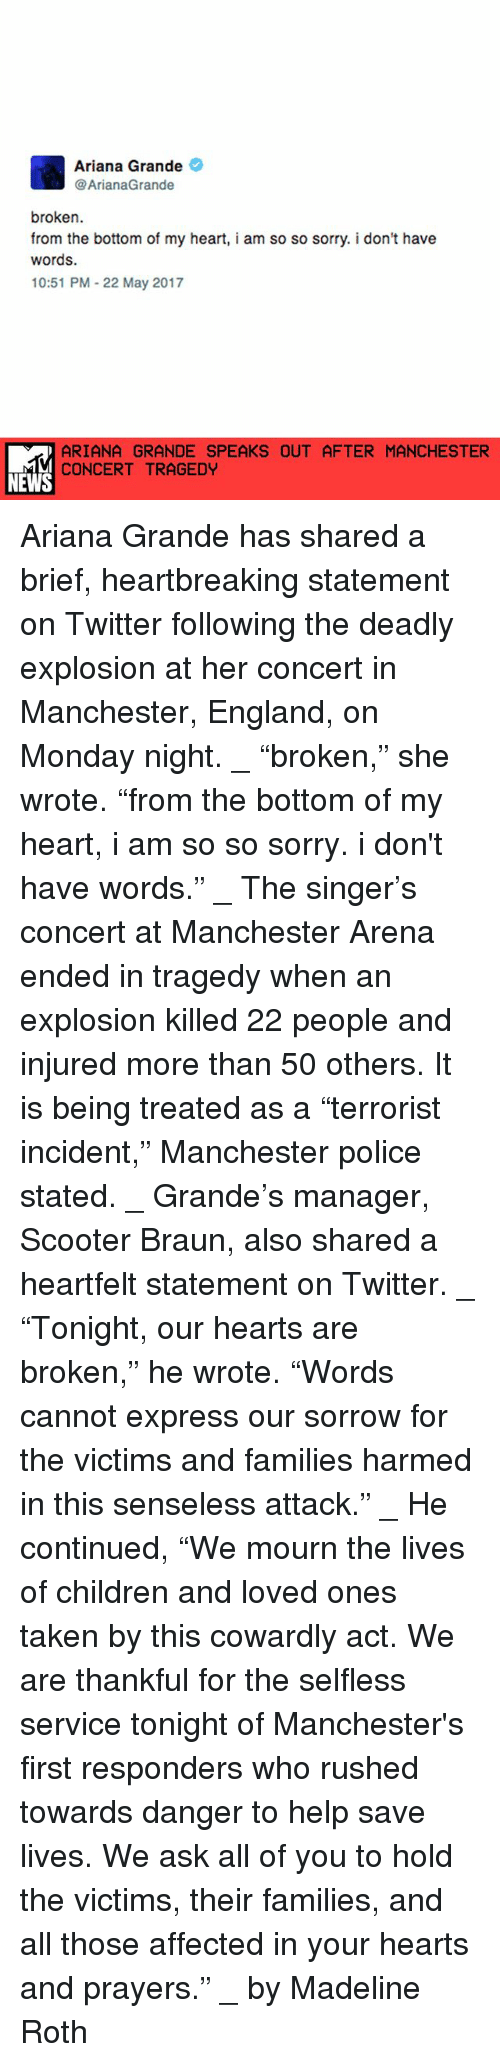 "Ariana Grande, Children, and England: Ariana Grande  @ArianaGrande  broken.  from the bottom of my heart, i am so so sorry. i don't have  words.  10:51 PM 22 May 2017  ARIANA GRANDE SPEAKS OUT AFTER MANCHESTER  CONCERT TRAGEDY  NEWS Ariana Grande has shared a brief, heartbreaking statement on Twitter following the deadly explosion at her concert in Manchester, England, on Monday night. _ ""broken,"" she wrote. ""from the bottom of my heart, i am so so sorry. i don't have words."" _ The singer's concert at Manchester Arena ended in tragedy when an explosion killed 22 people and injured more than 50 others. It is being treated as a ""terrorist incident,"" Manchester police stated. _ Grande's manager, Scooter Braun, also shared a heartfelt statement on Twitter. _ ""Tonight, our hearts are broken,"" he wrote. ""Words cannot express our sorrow for the victims and families harmed in this senseless attack."" _ He continued, ""We mourn the lives of children and loved ones taken by this cowardly act. We are thankful for the selfless service tonight of Manchester's first responders who rushed towards danger to help save lives. We ask all of you to hold the victims, their families, and all those affected in your hearts and prayers."" _ by Madeline Roth"